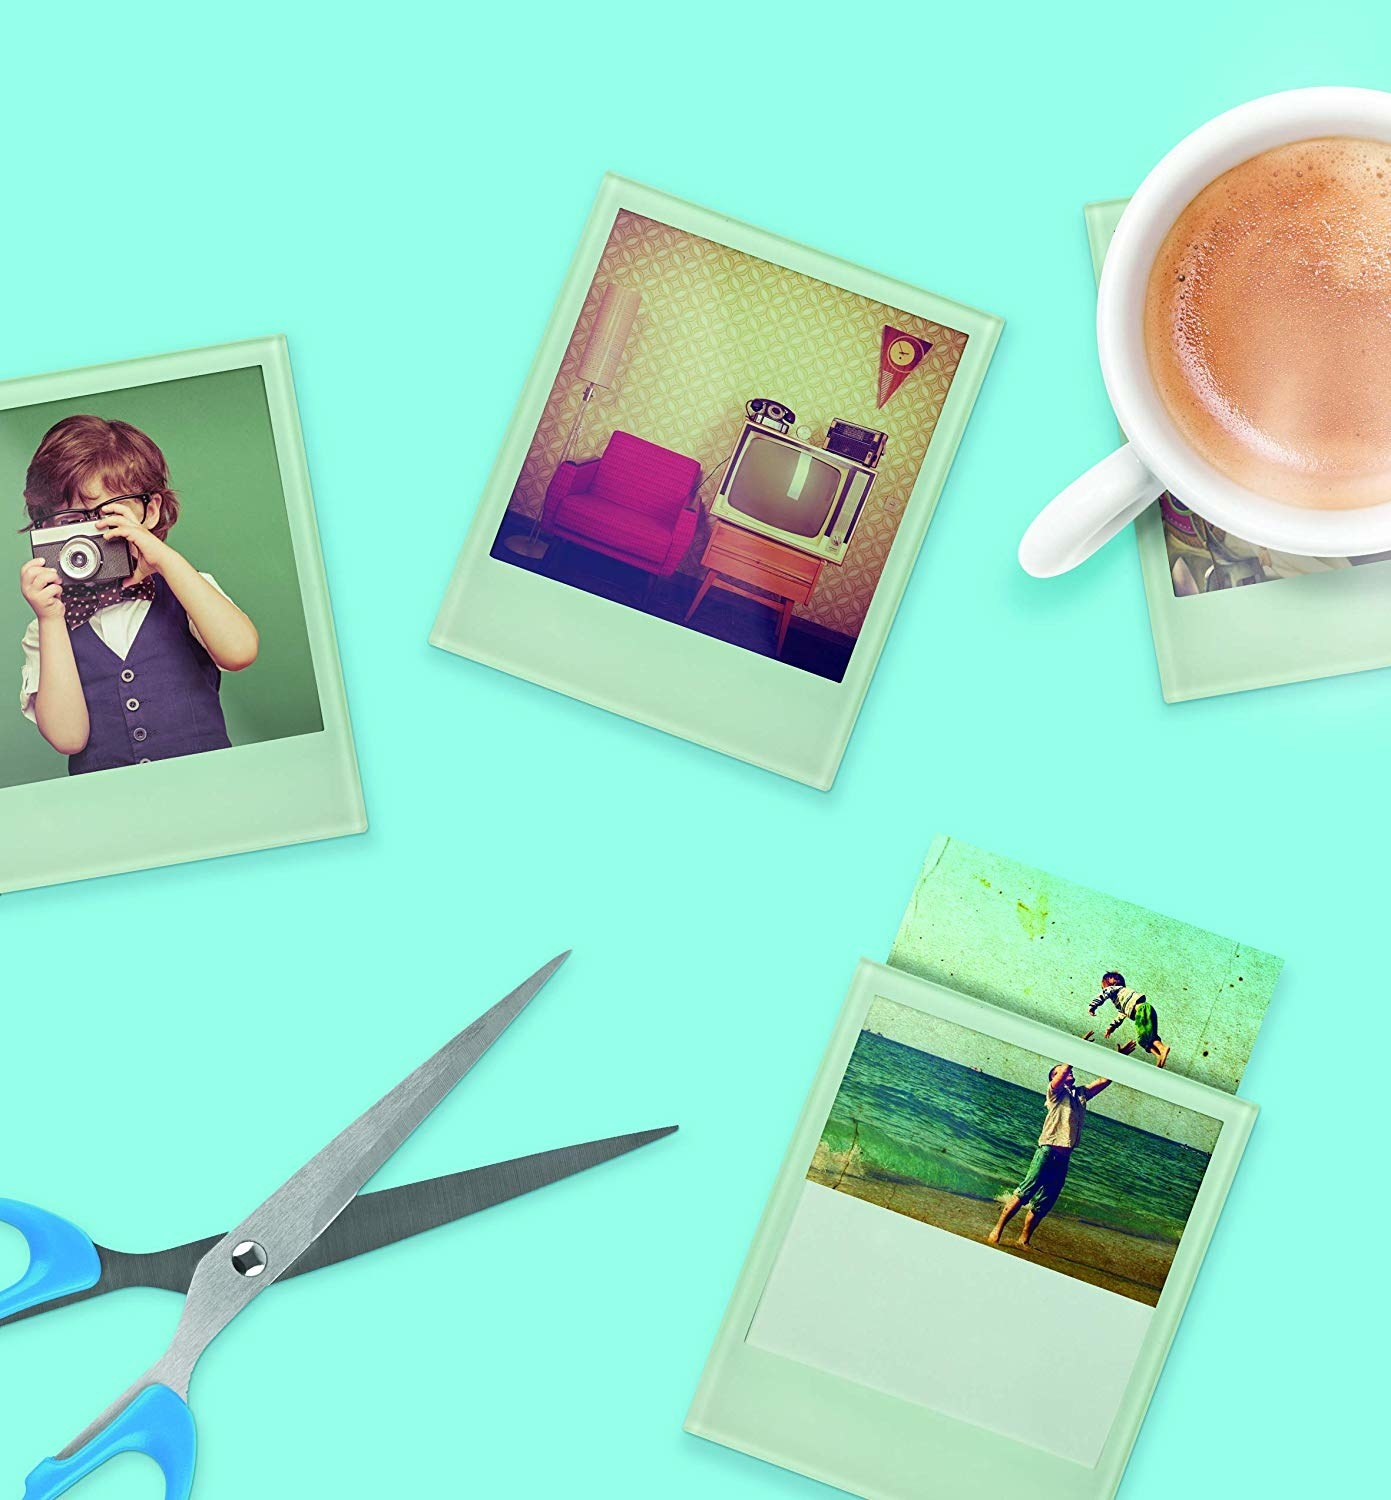 a bunch of polaroid shaped coasters with photos that can be swapped in and out